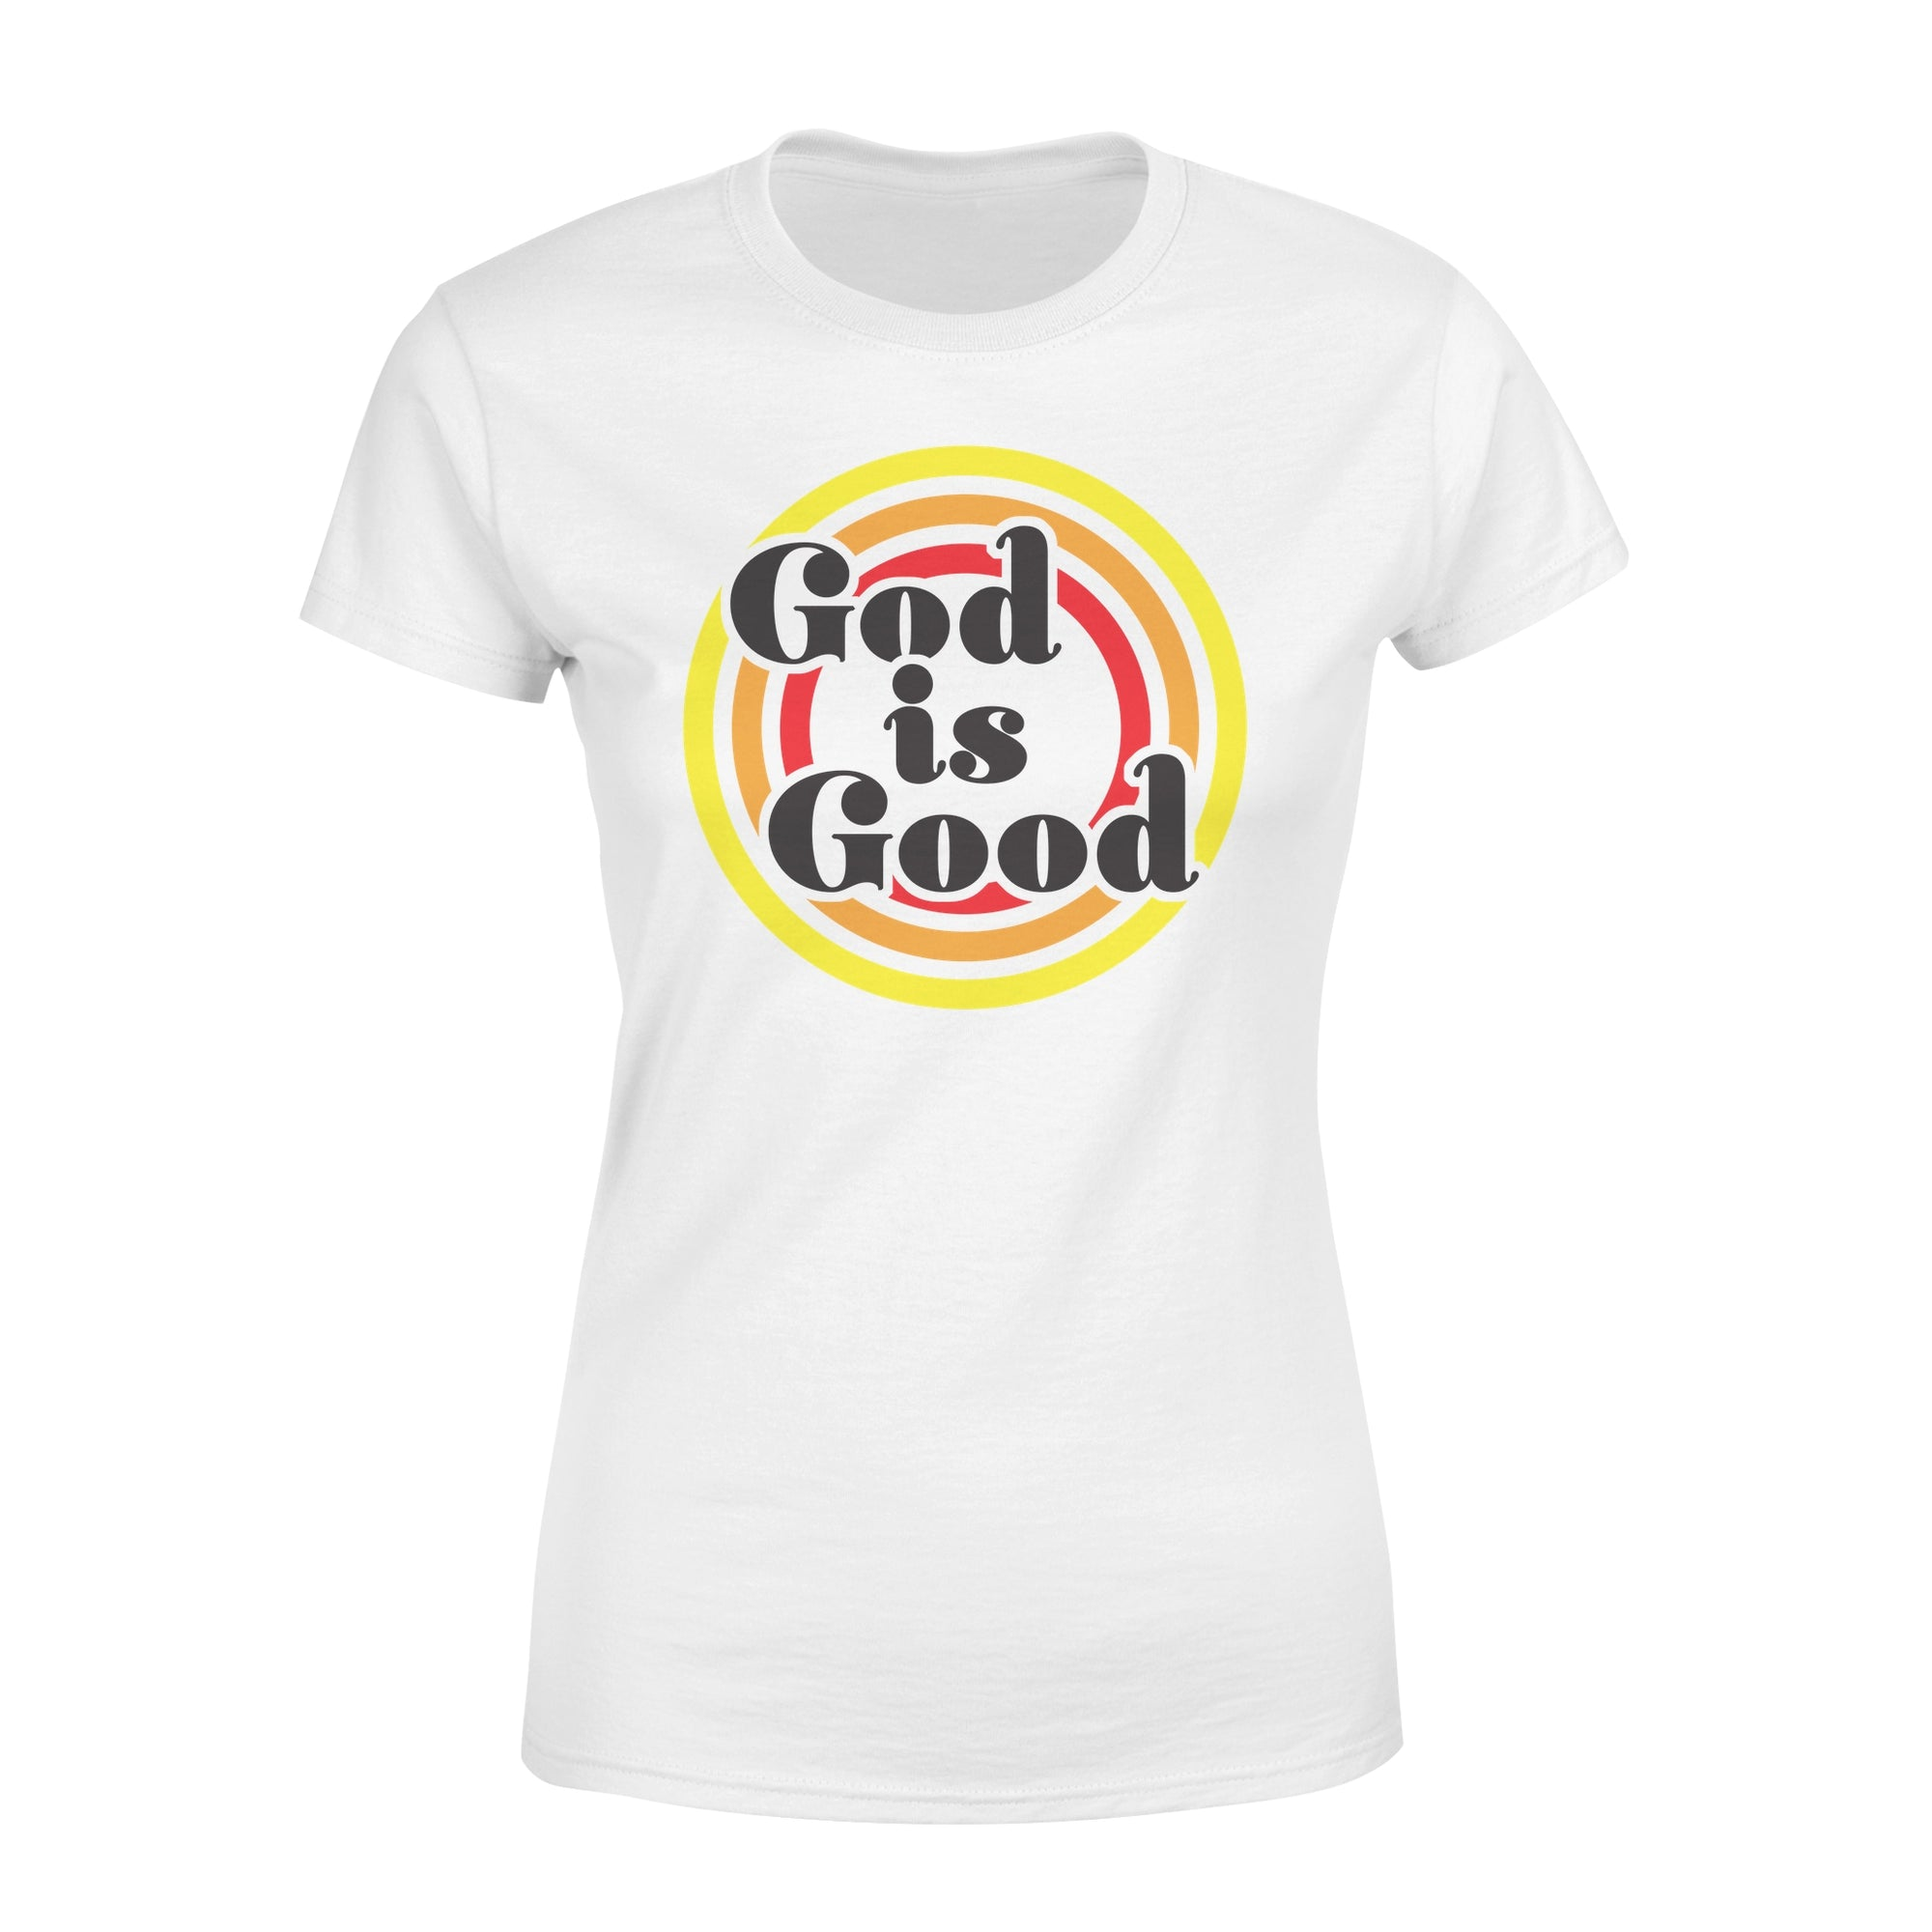 VIRA Premium Women's Tee For God Lovers